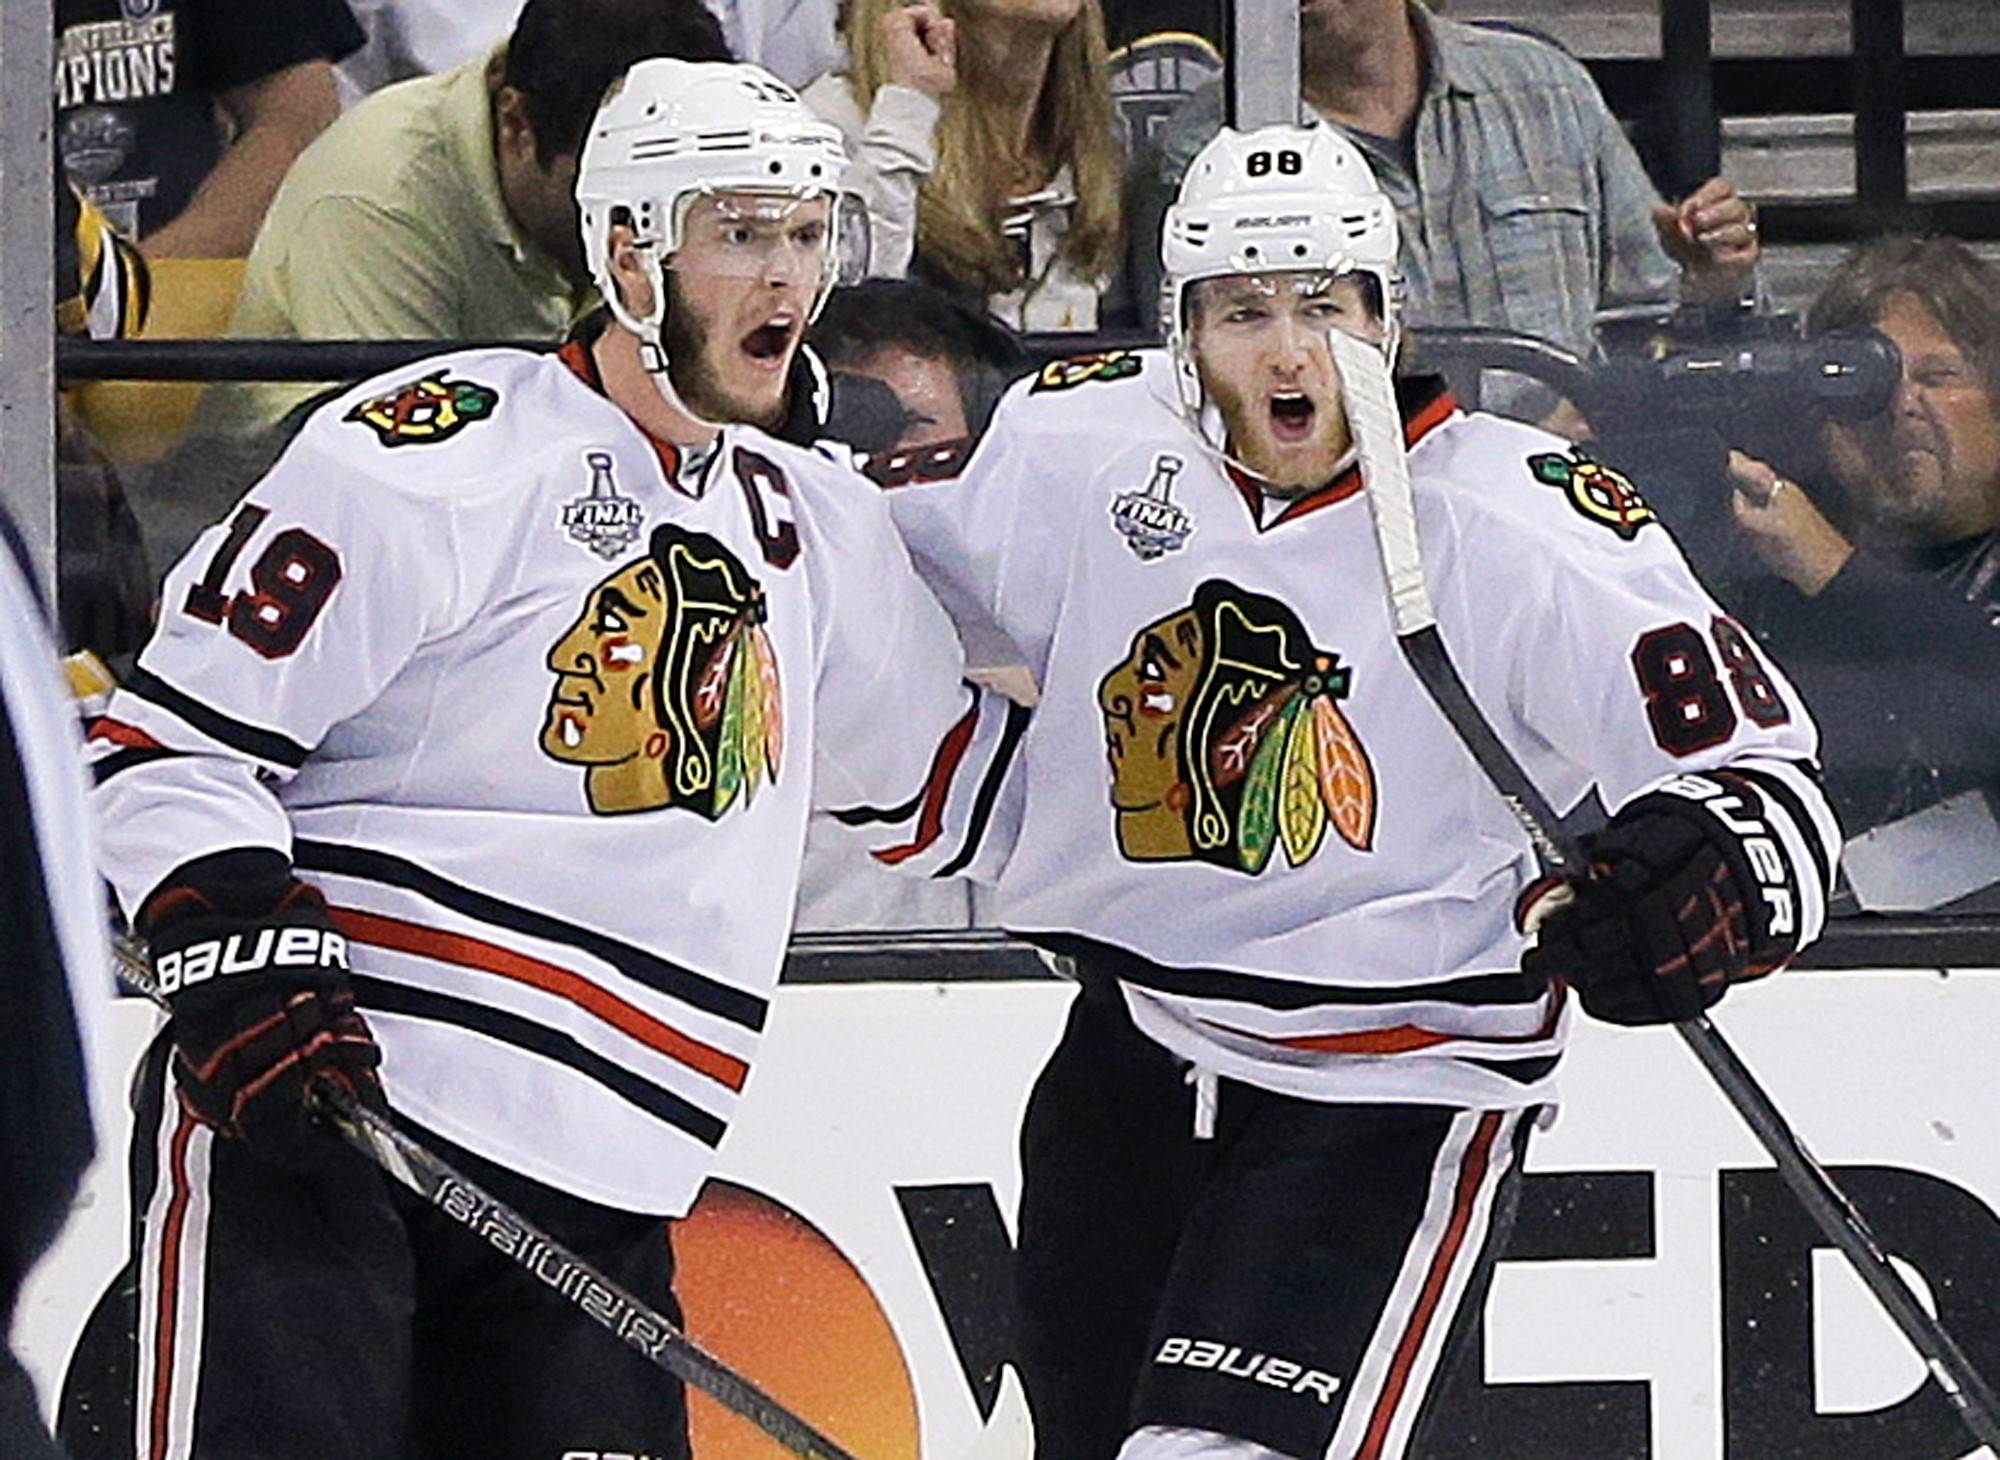 Center Jonathan Toews (19) and right wing Patrick Kane have agreed to eight-year contract extensions with the Blackhawks, reportedly worth $10.5 million per season.